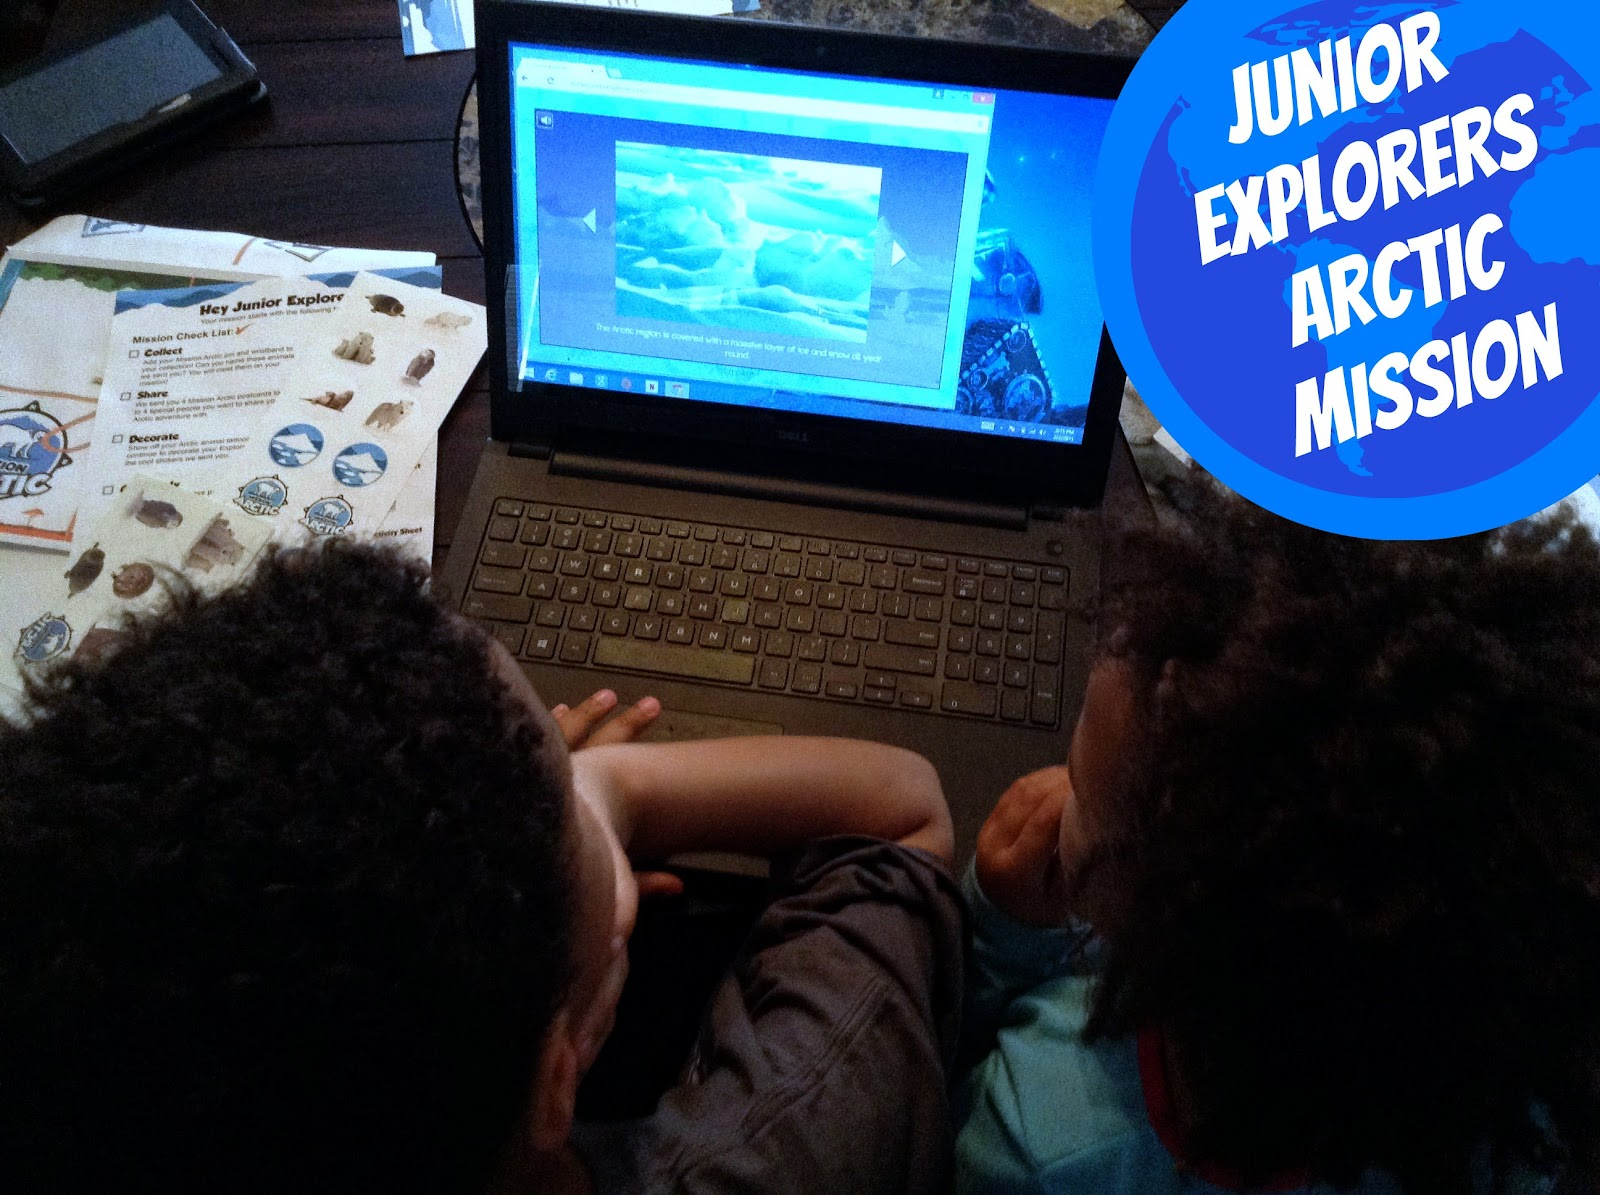 Snow Day Fun with @JuniorExplorers and the Arctic Mission